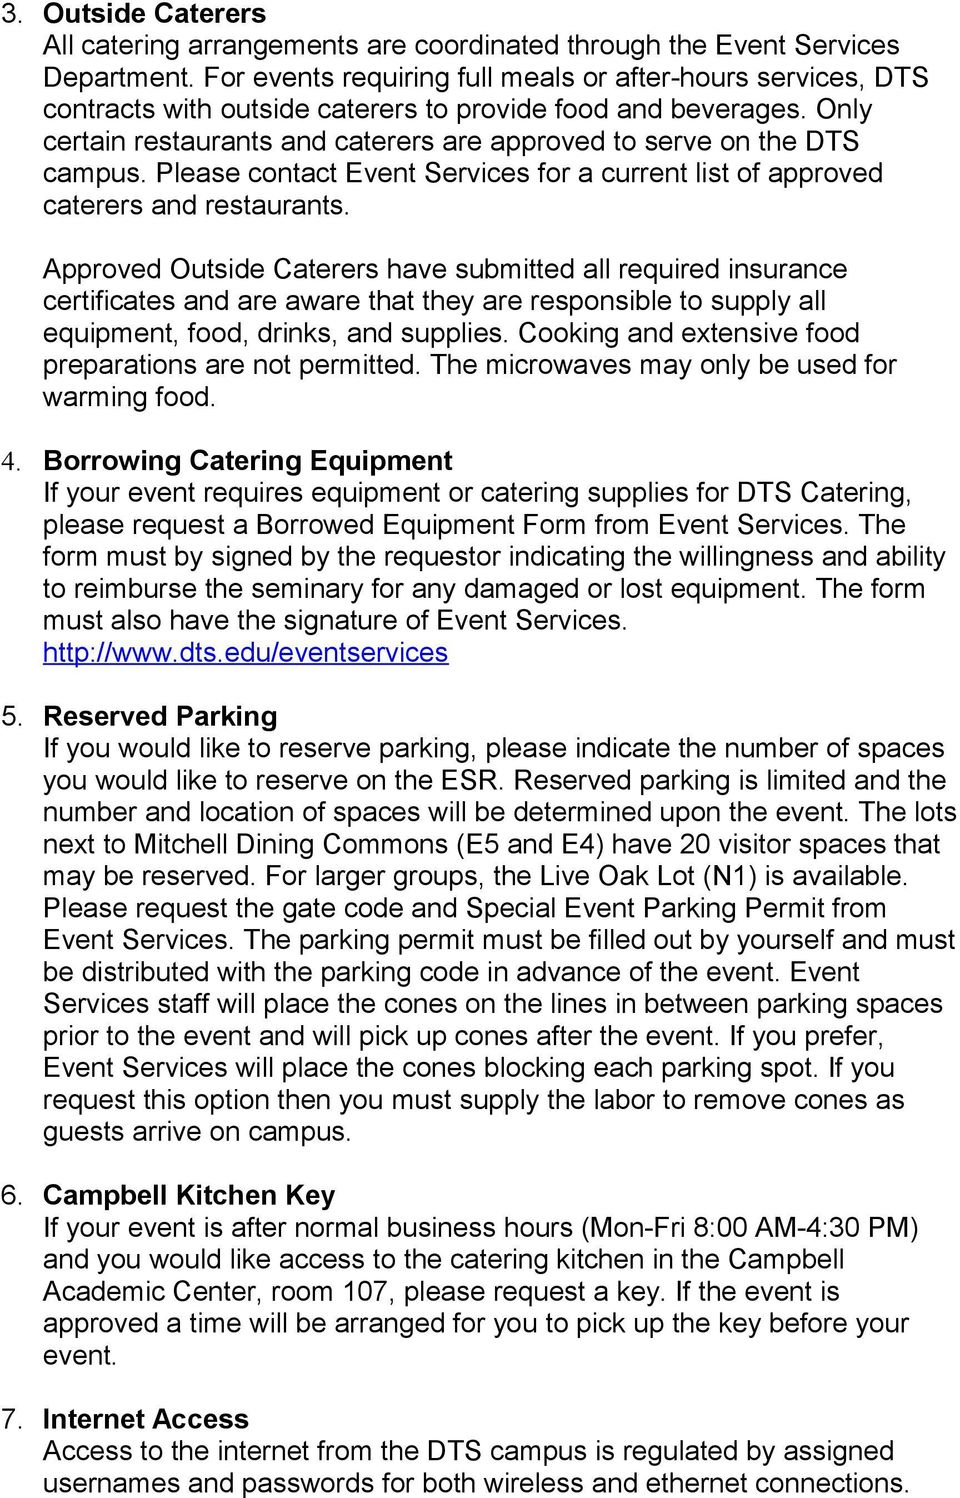 Only certain restaurants and caterers are approved to serve on the DTS campus. Please contact Event Services for a current list of approved caterers and restaurants.